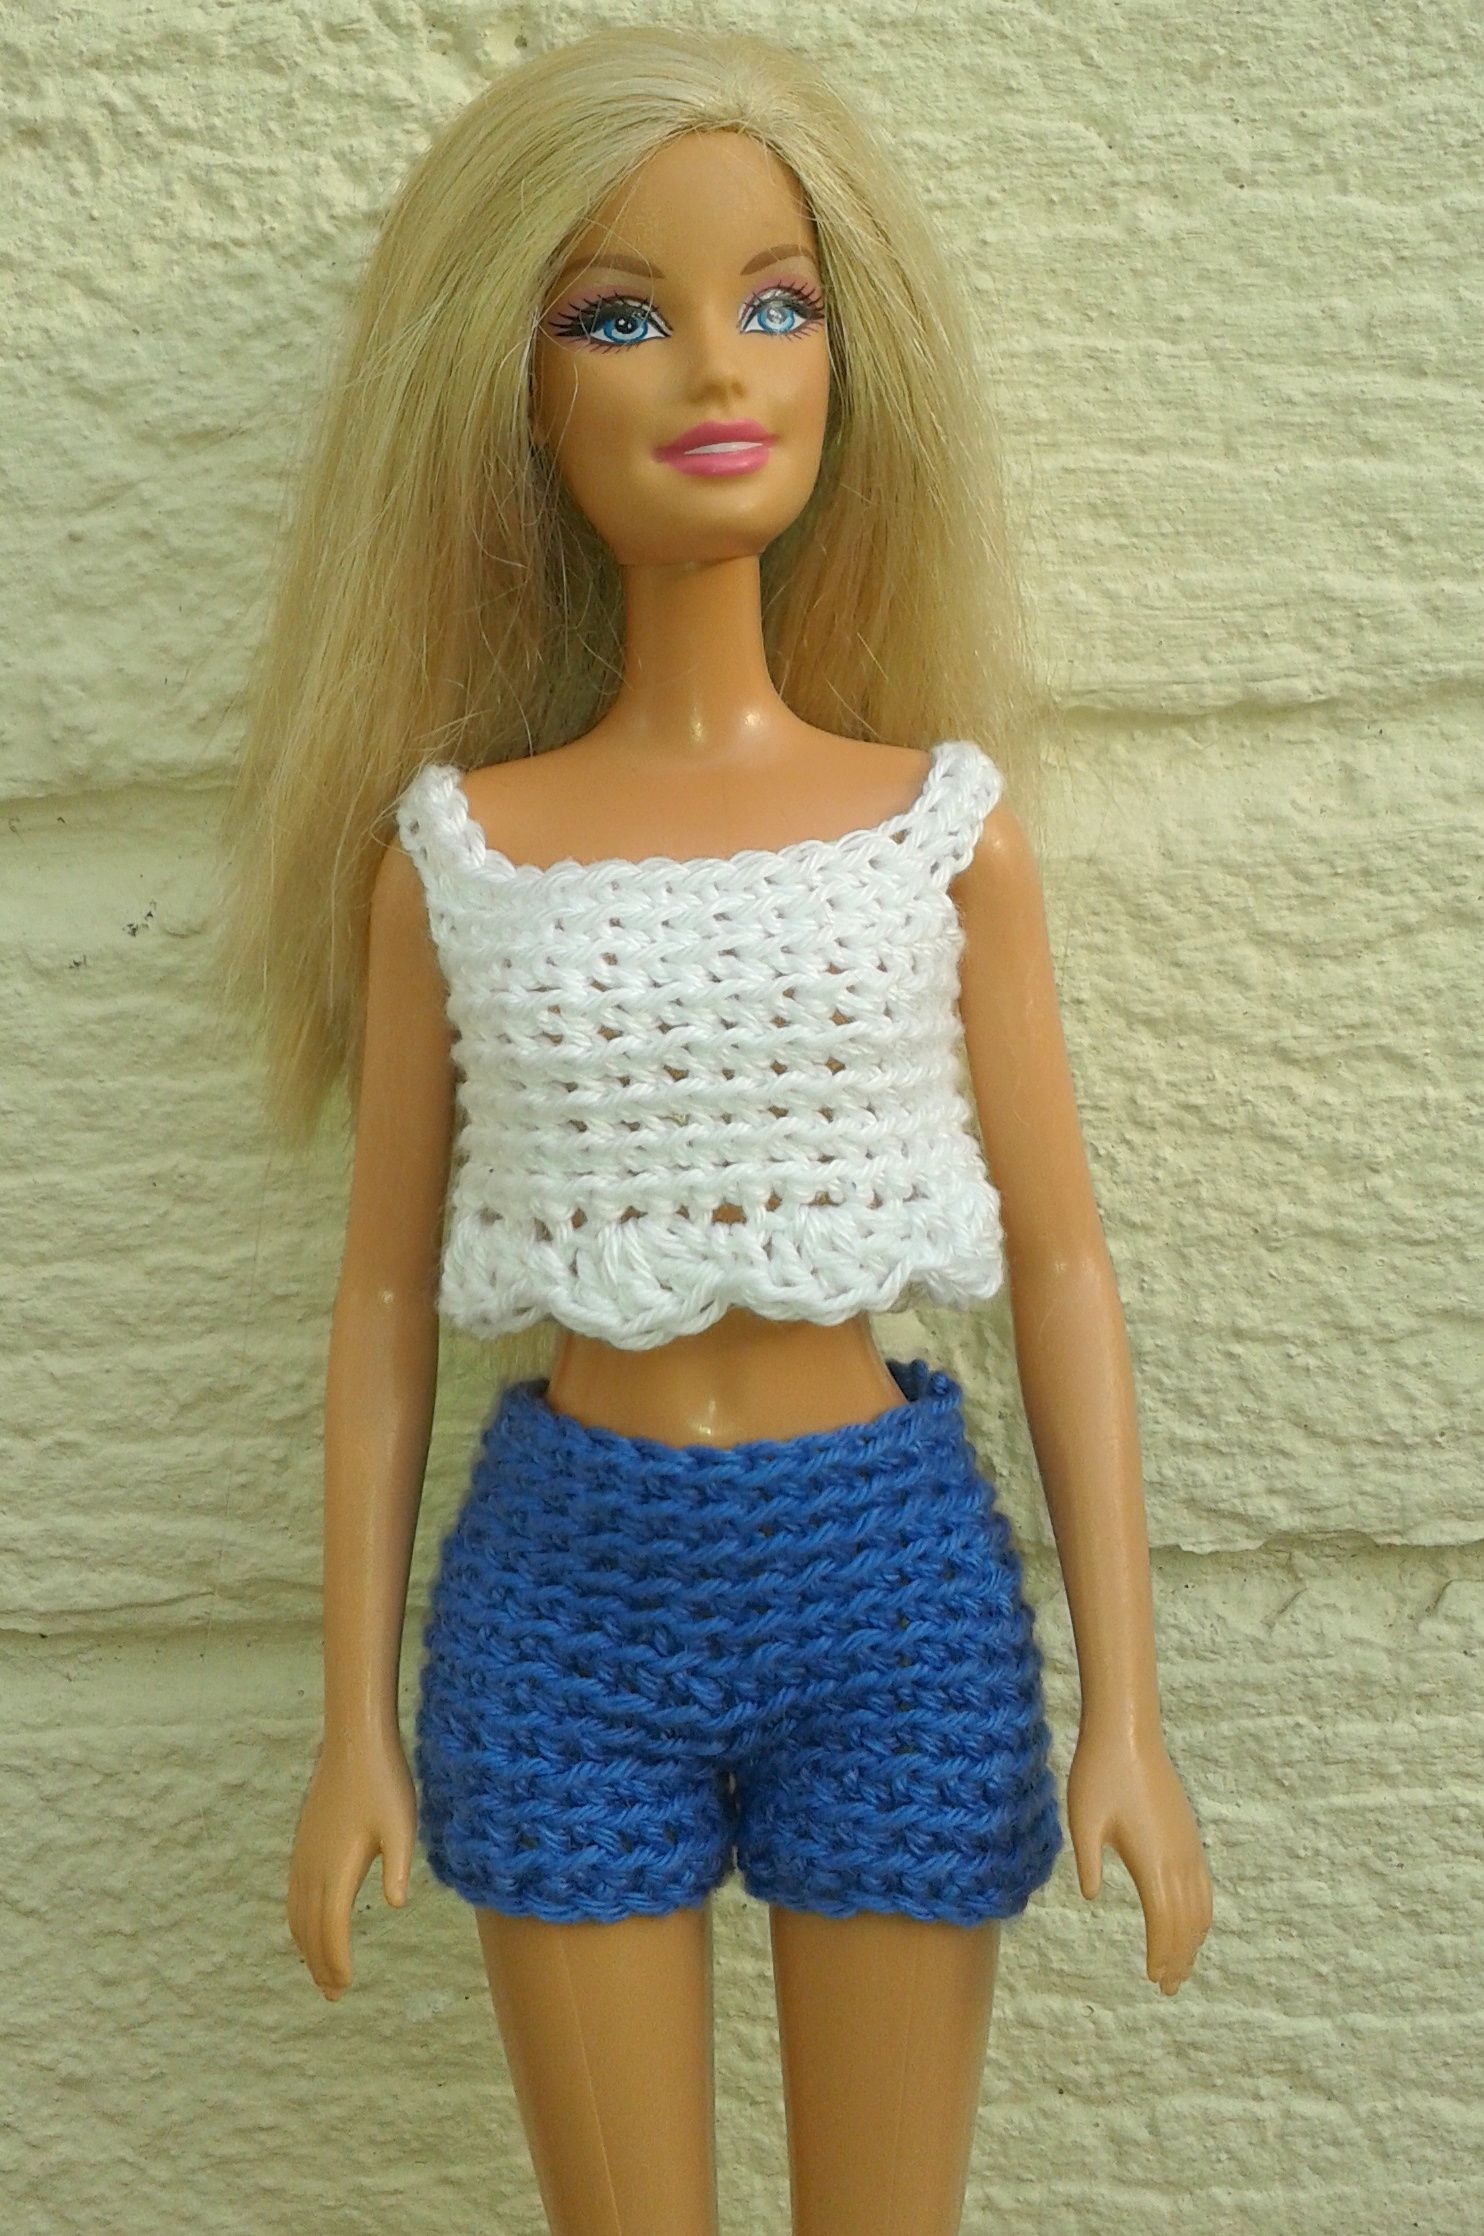 Barbie Crochet Patterns New This Outfit Was Inspired by A Shopping Trip to topshop Of Wonderful 45 Ideas Barbie Crochet Patterns